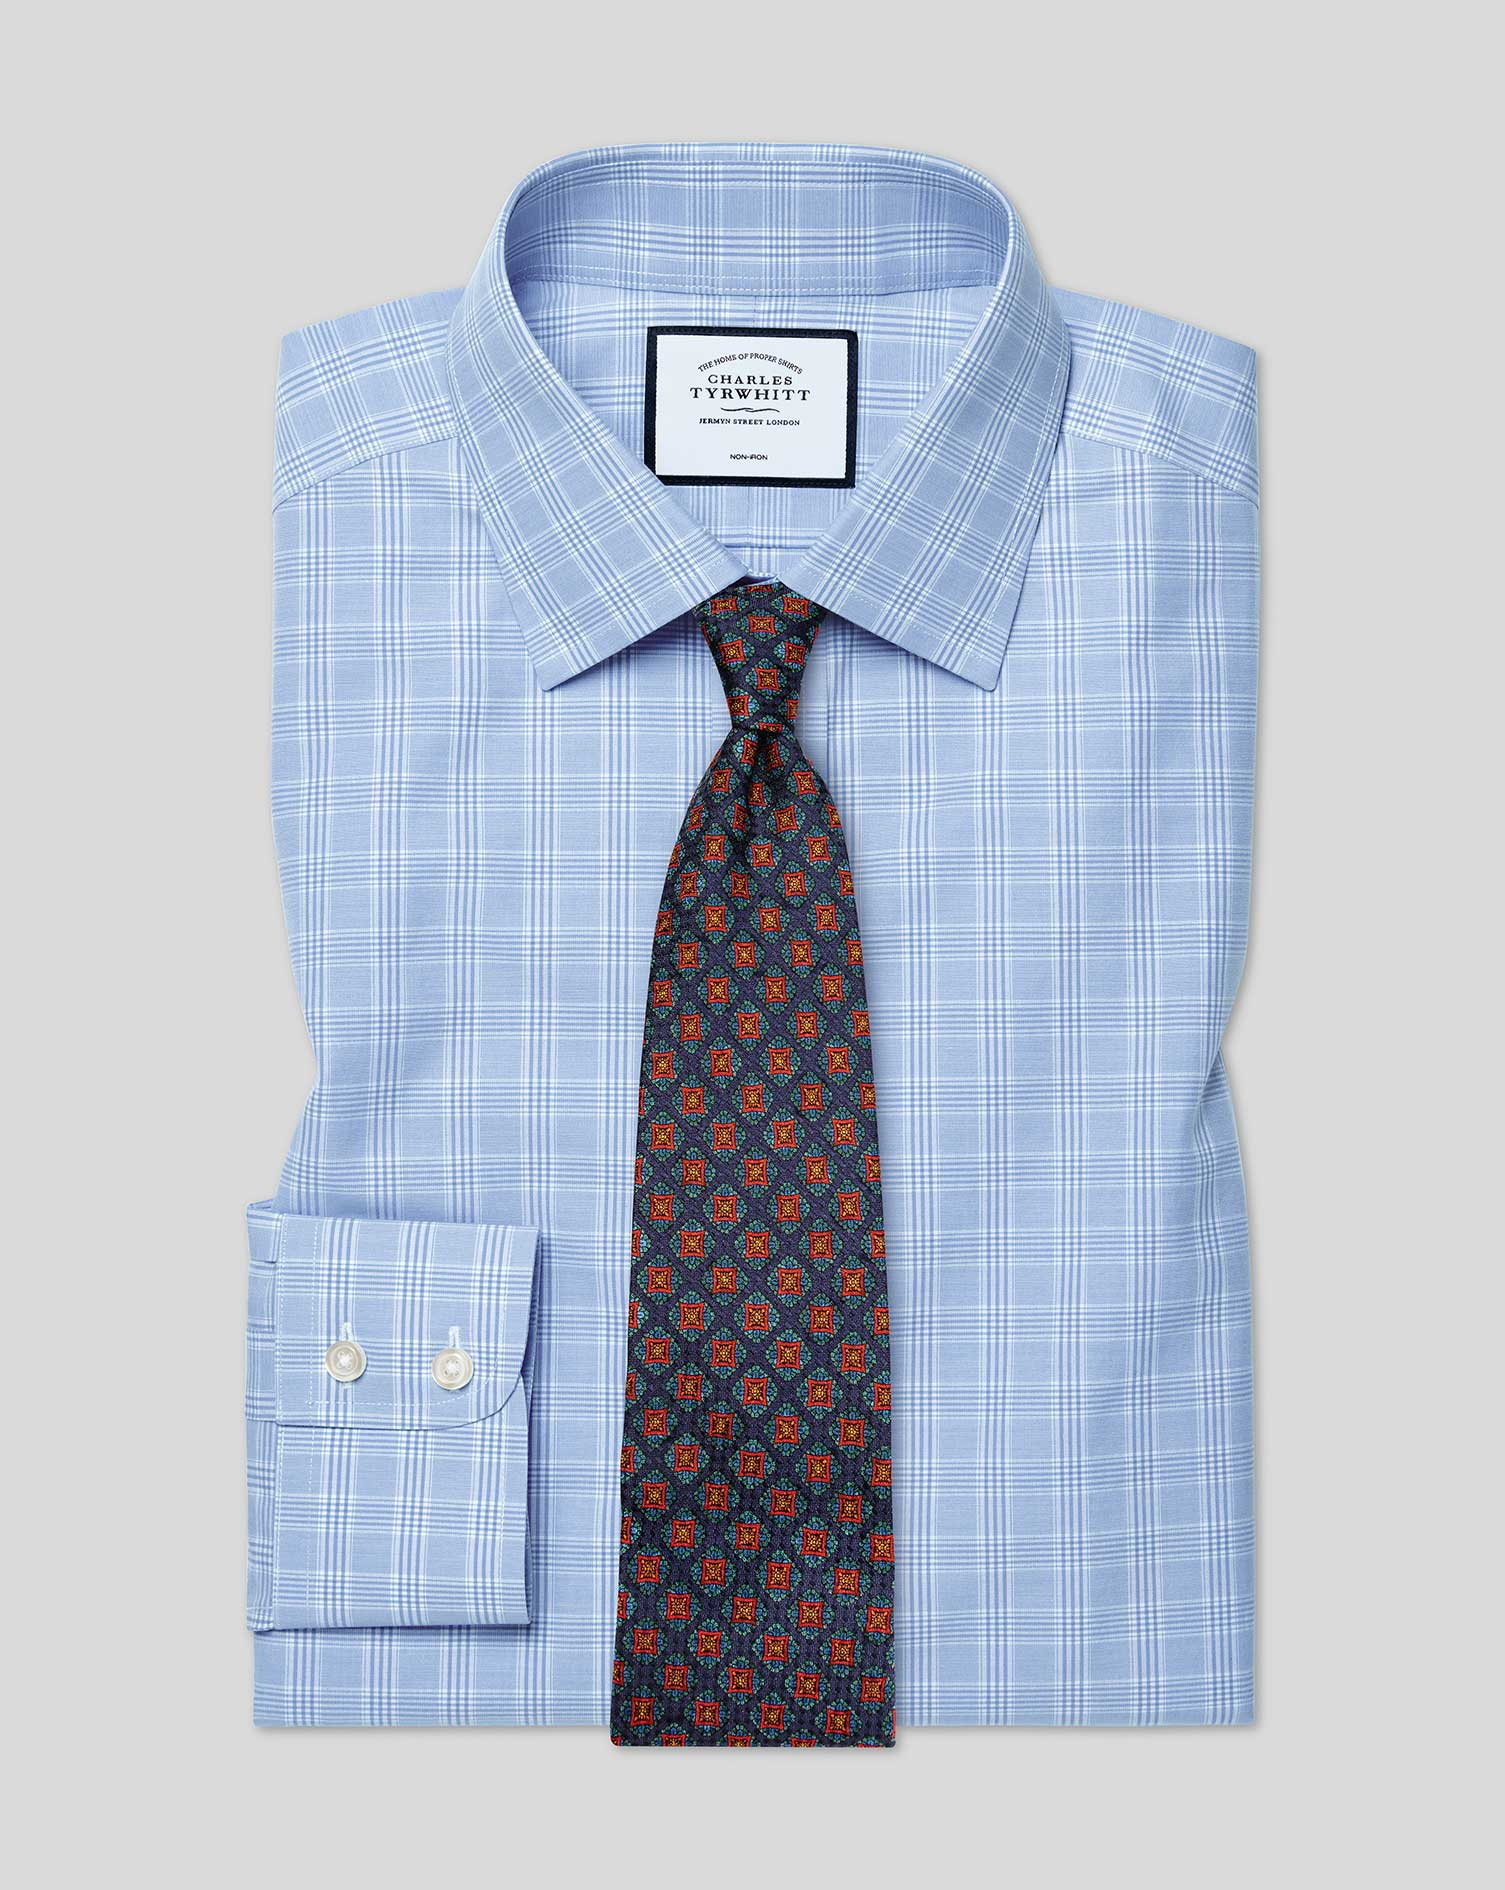 Slim Fit Non-Iron Sky Blue Prince Of Wales Check Cotton Formal Shirt Single Cuff Size 17.5/38 by Cha